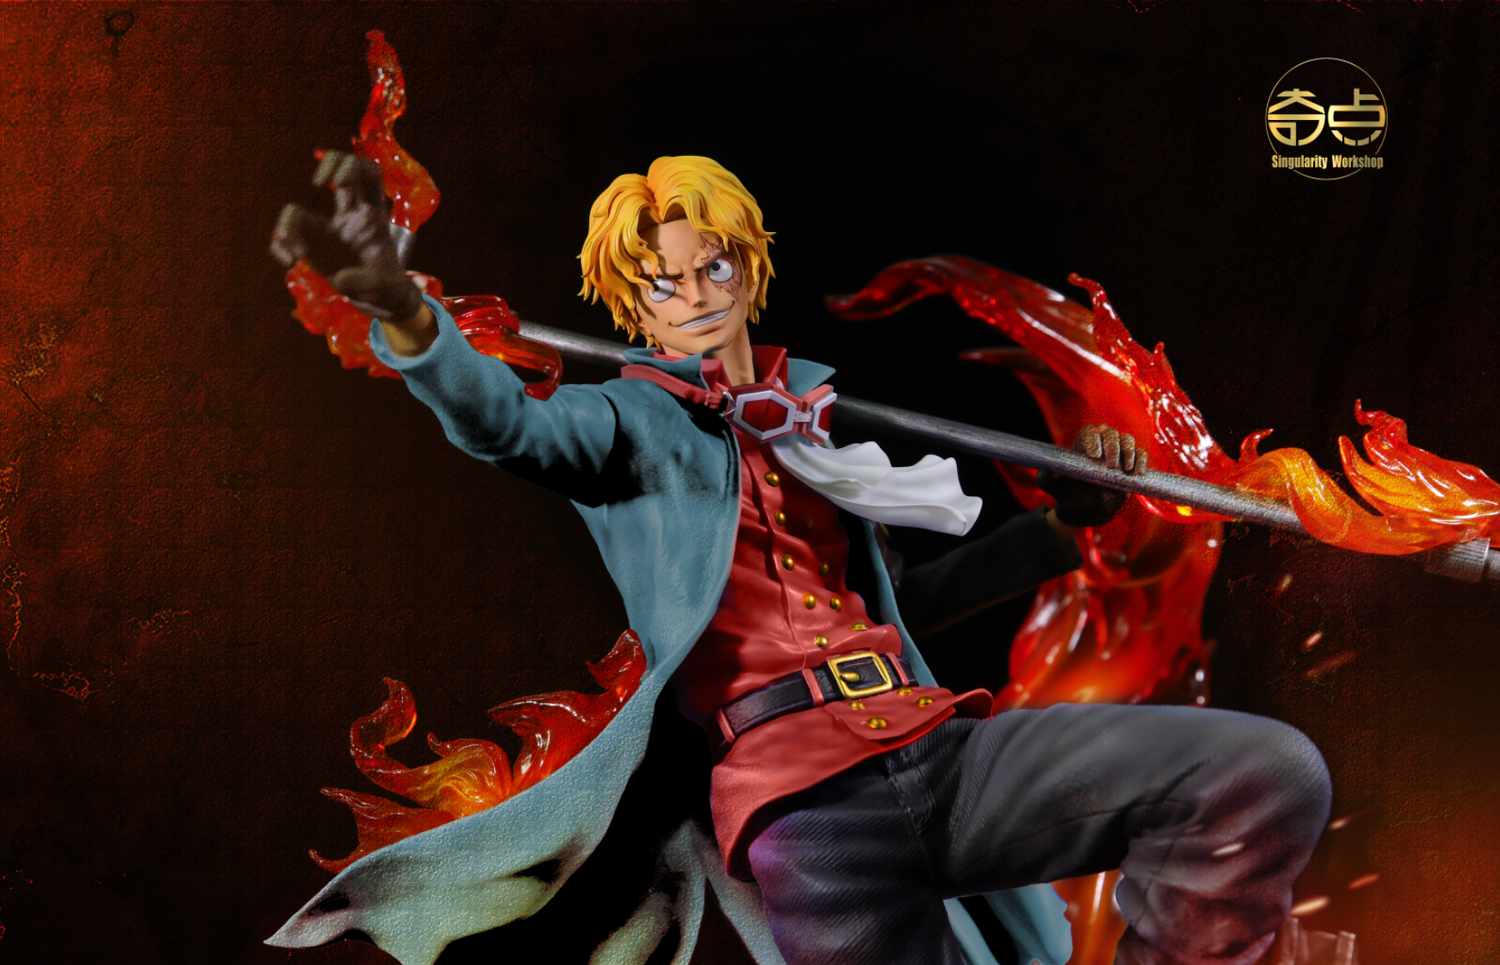 Image of [In-Stock]One Piece Singularity Workshop Sabo(movie version) Resin Statue